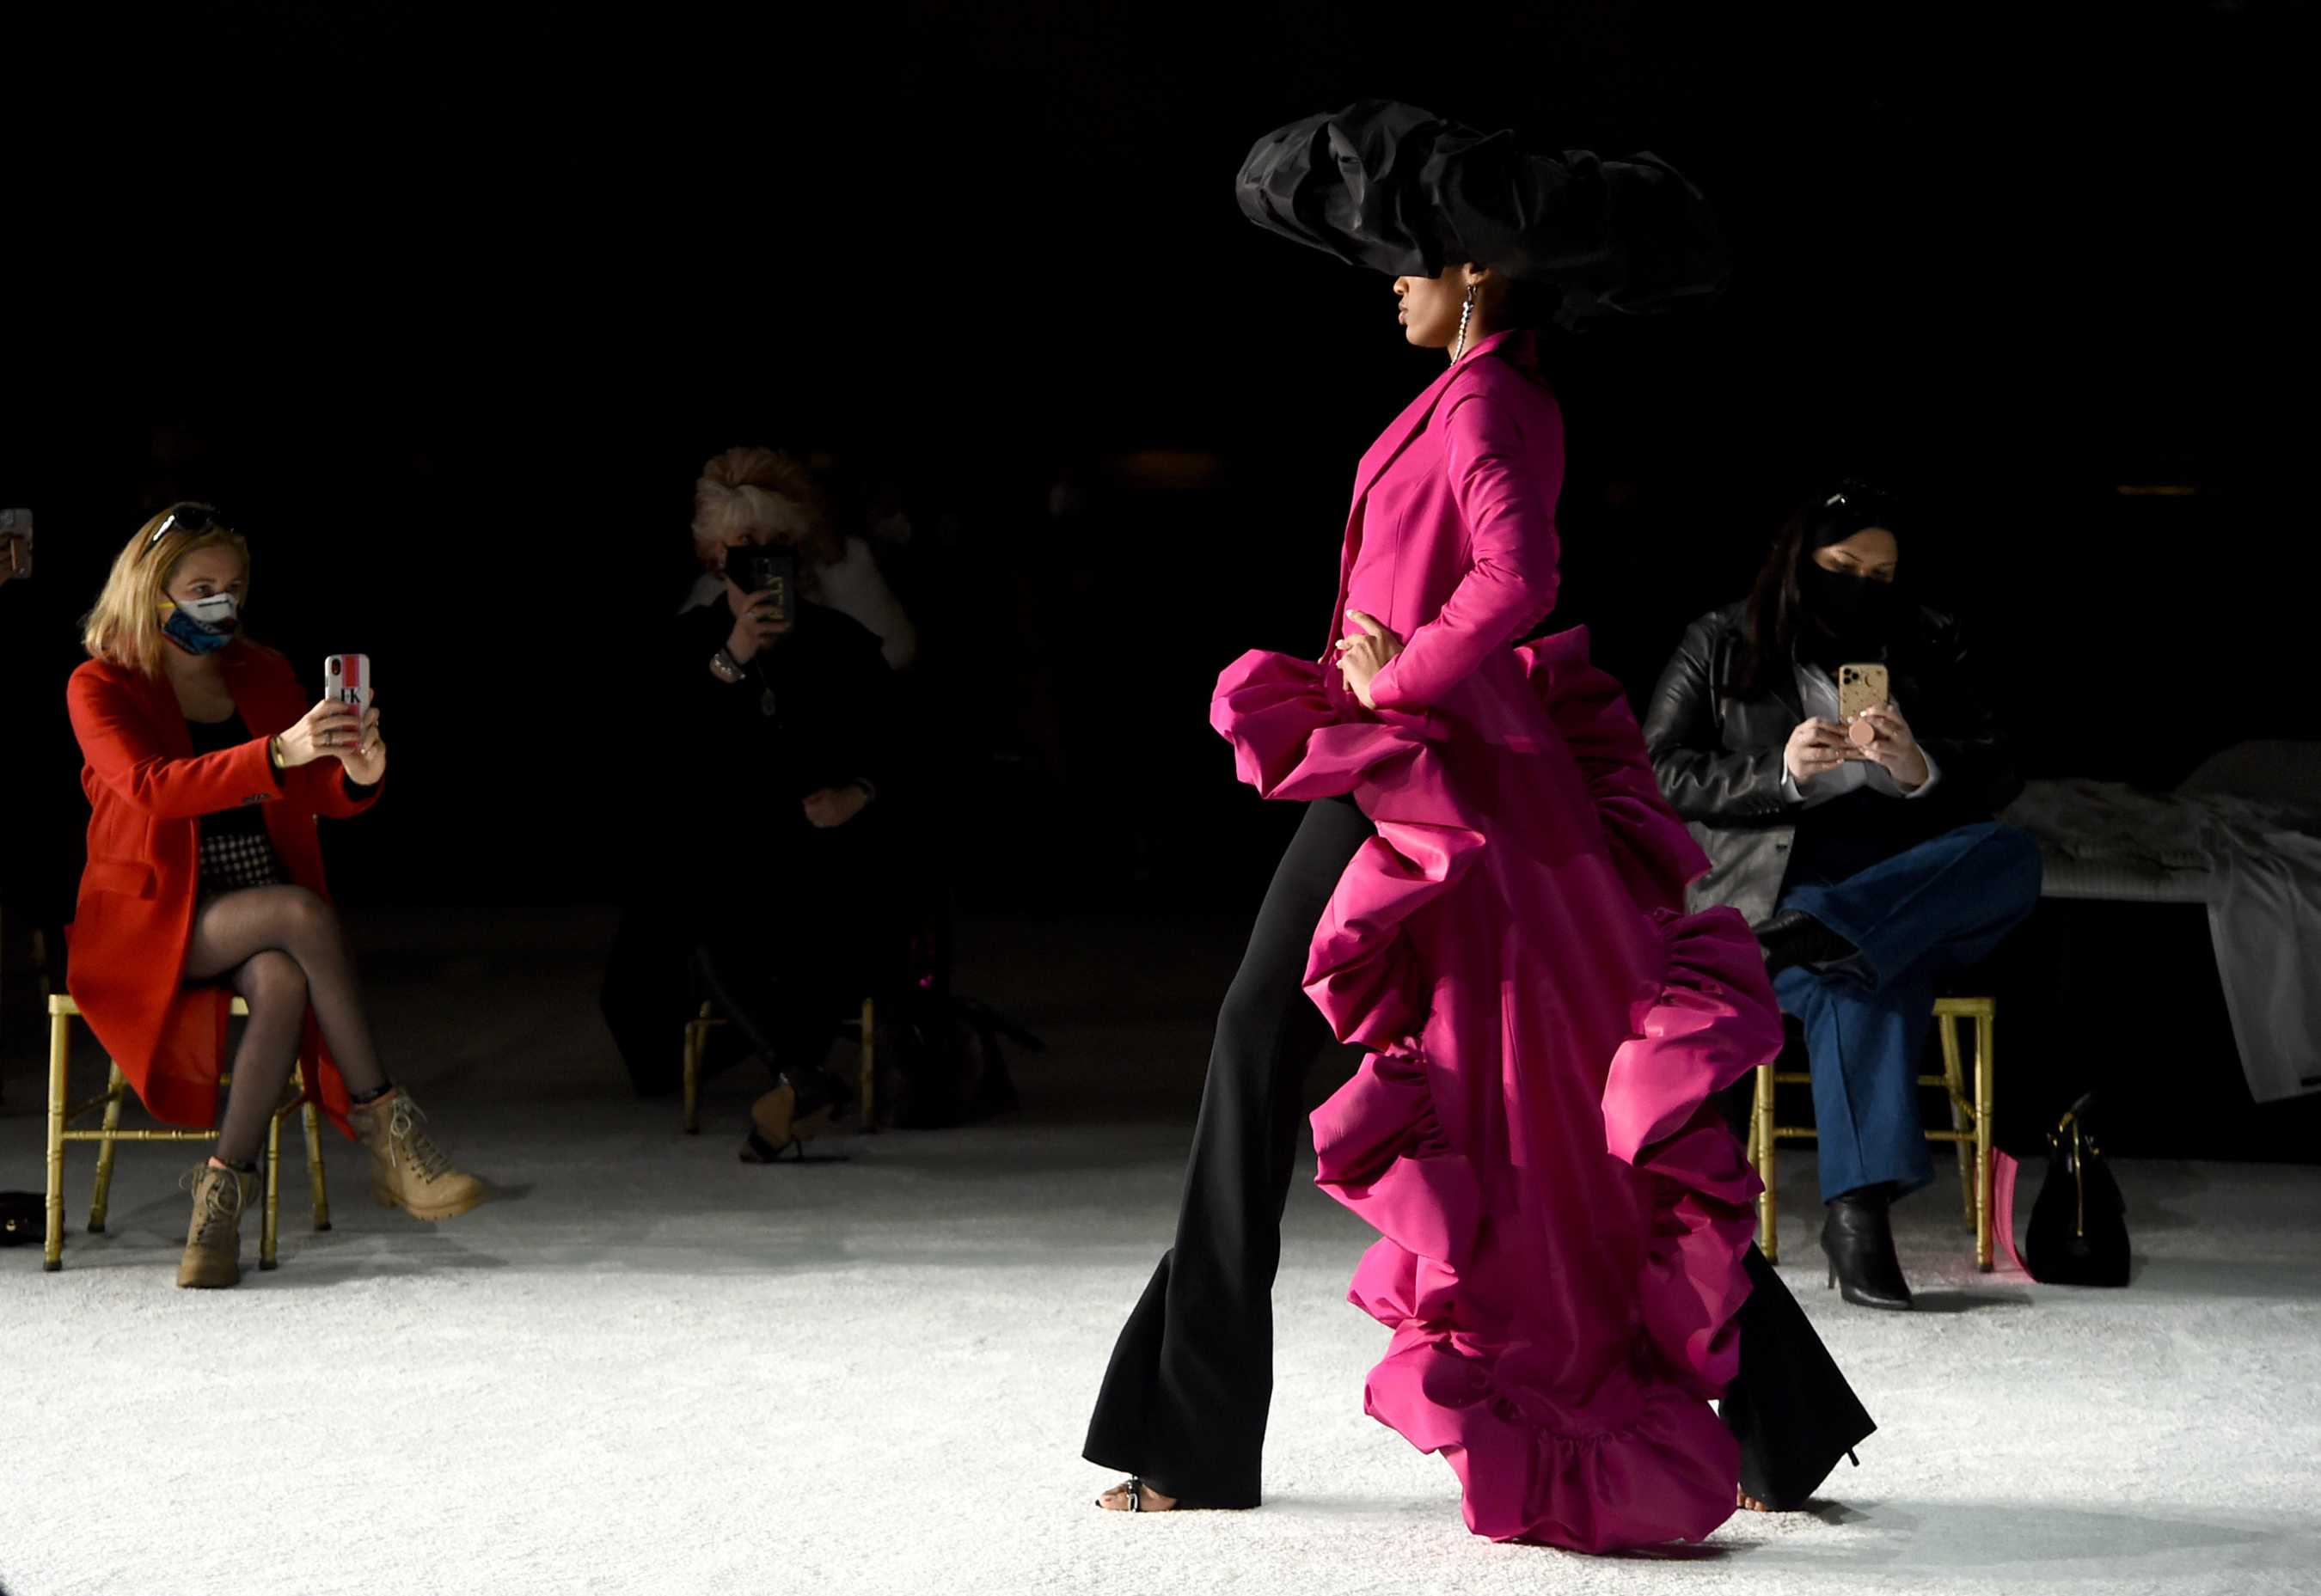 Christian Siriano Fall 2021 Fashion Show